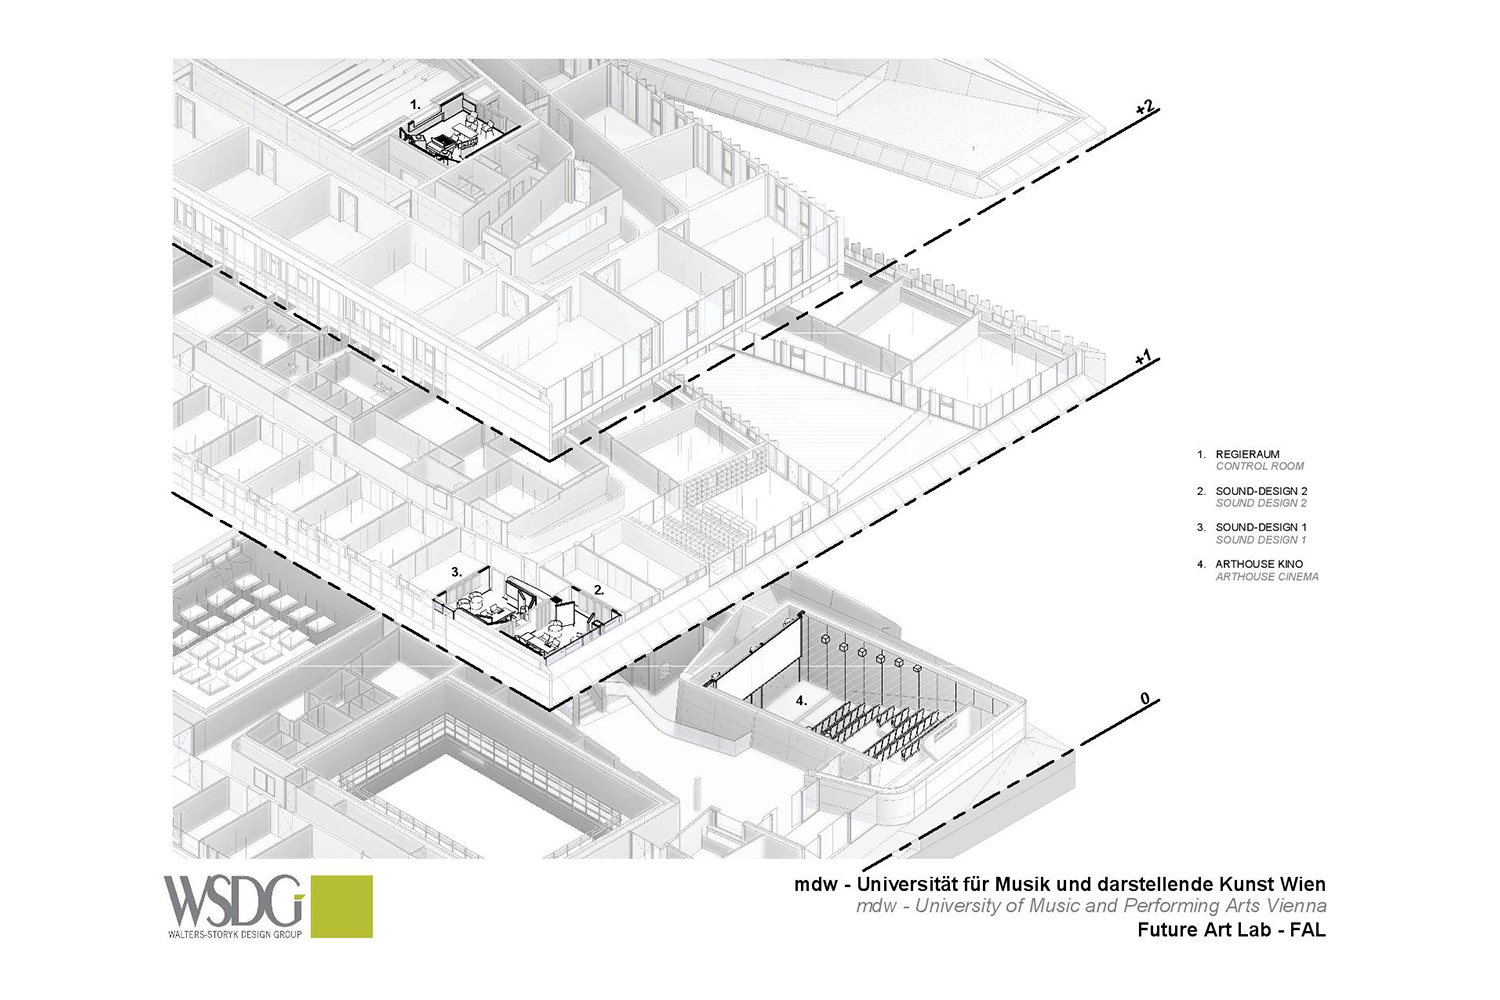 The University of Music and Performing Arts of Vienna new Future Art Lab designed by WSDG. Presentation drawing 2.